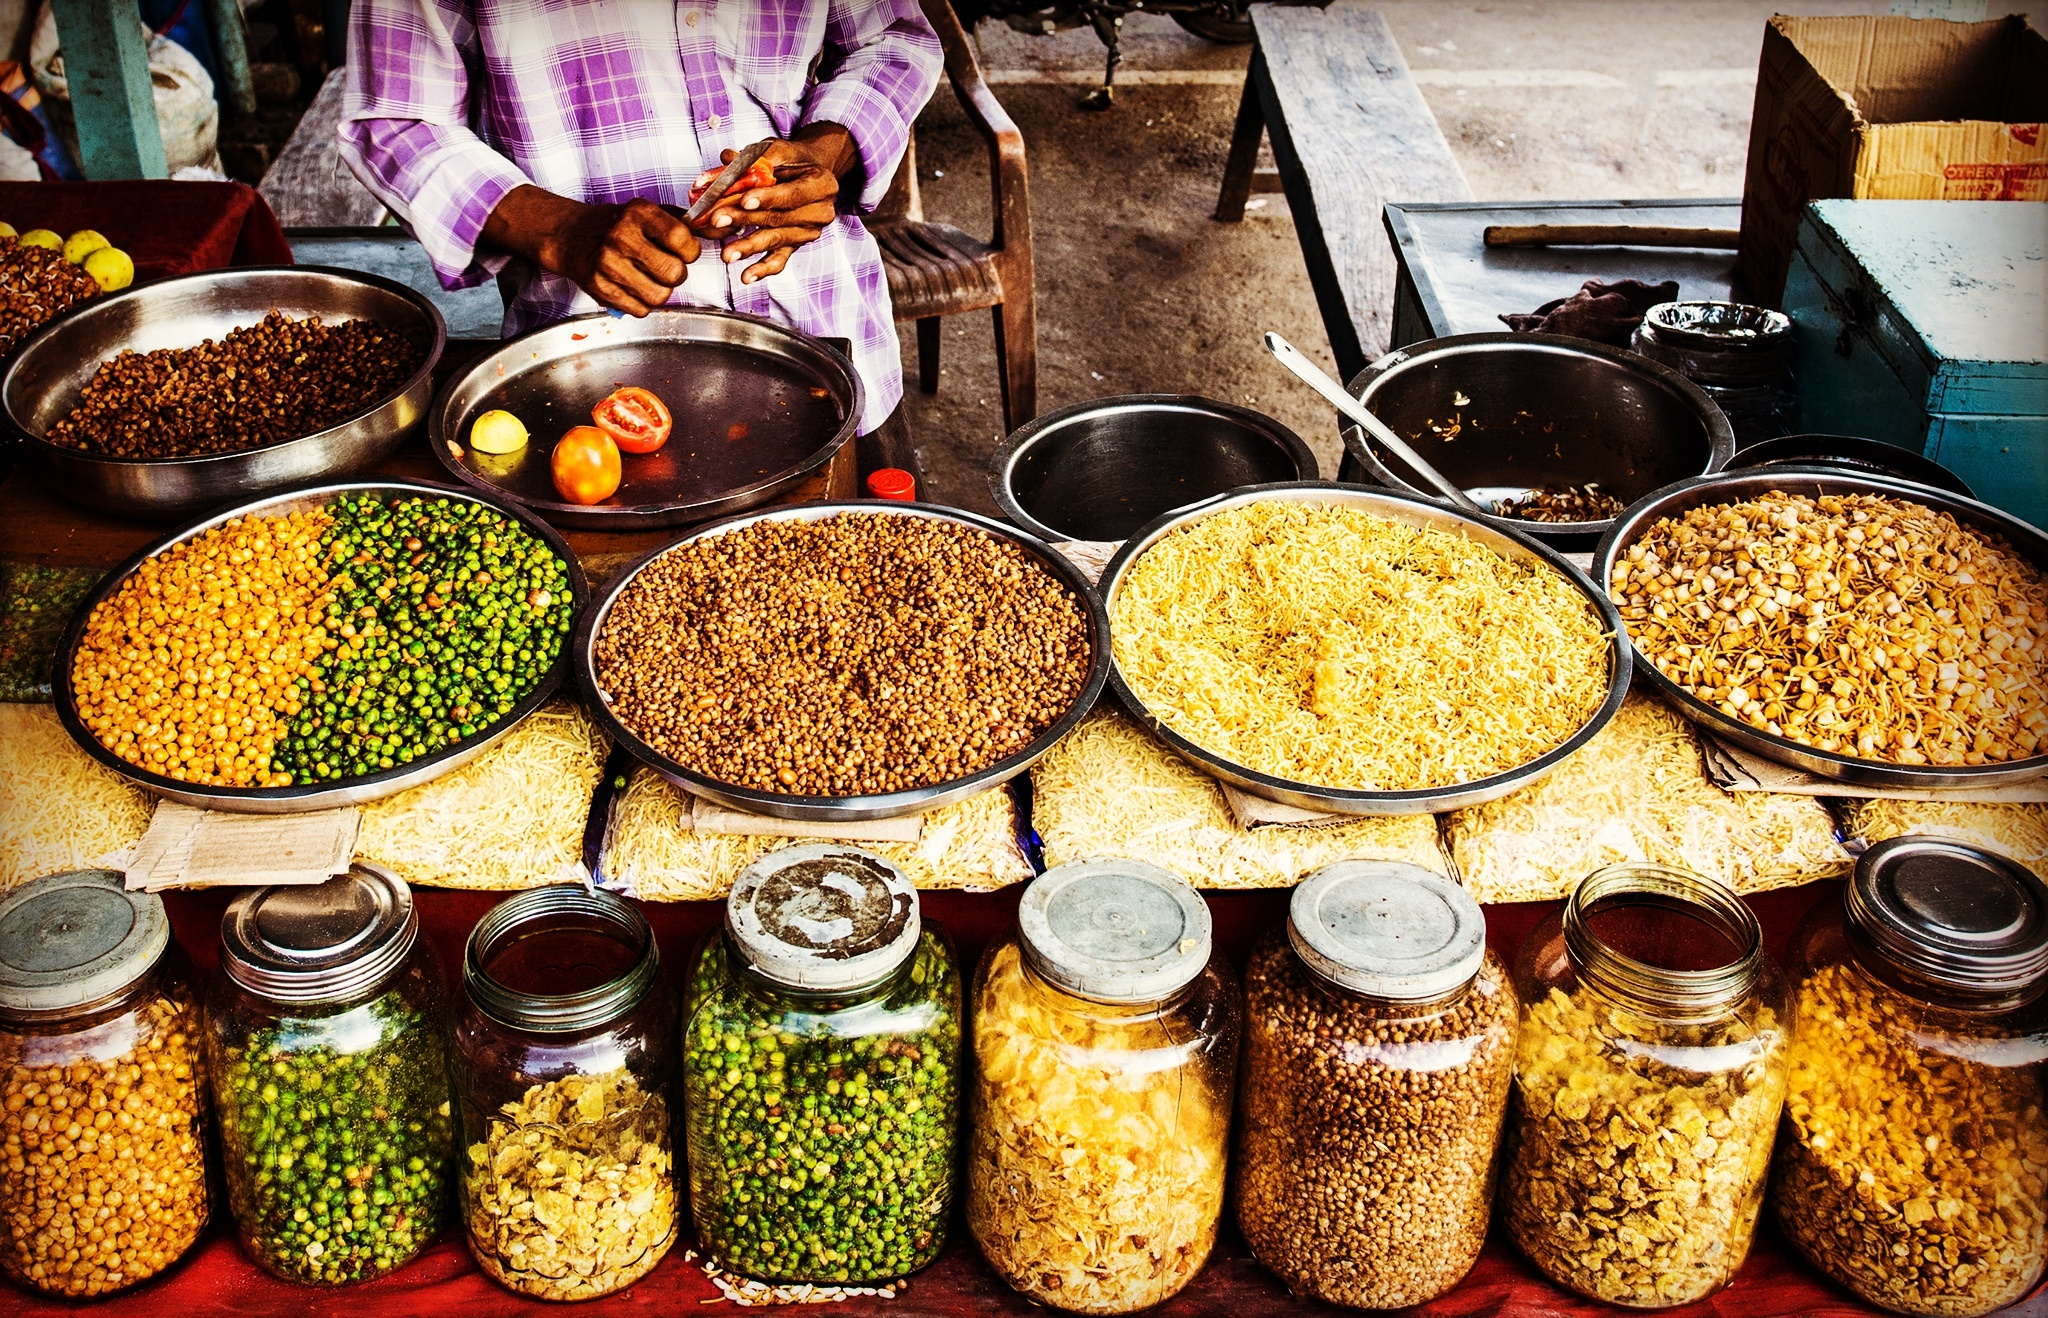 Image of a market in India